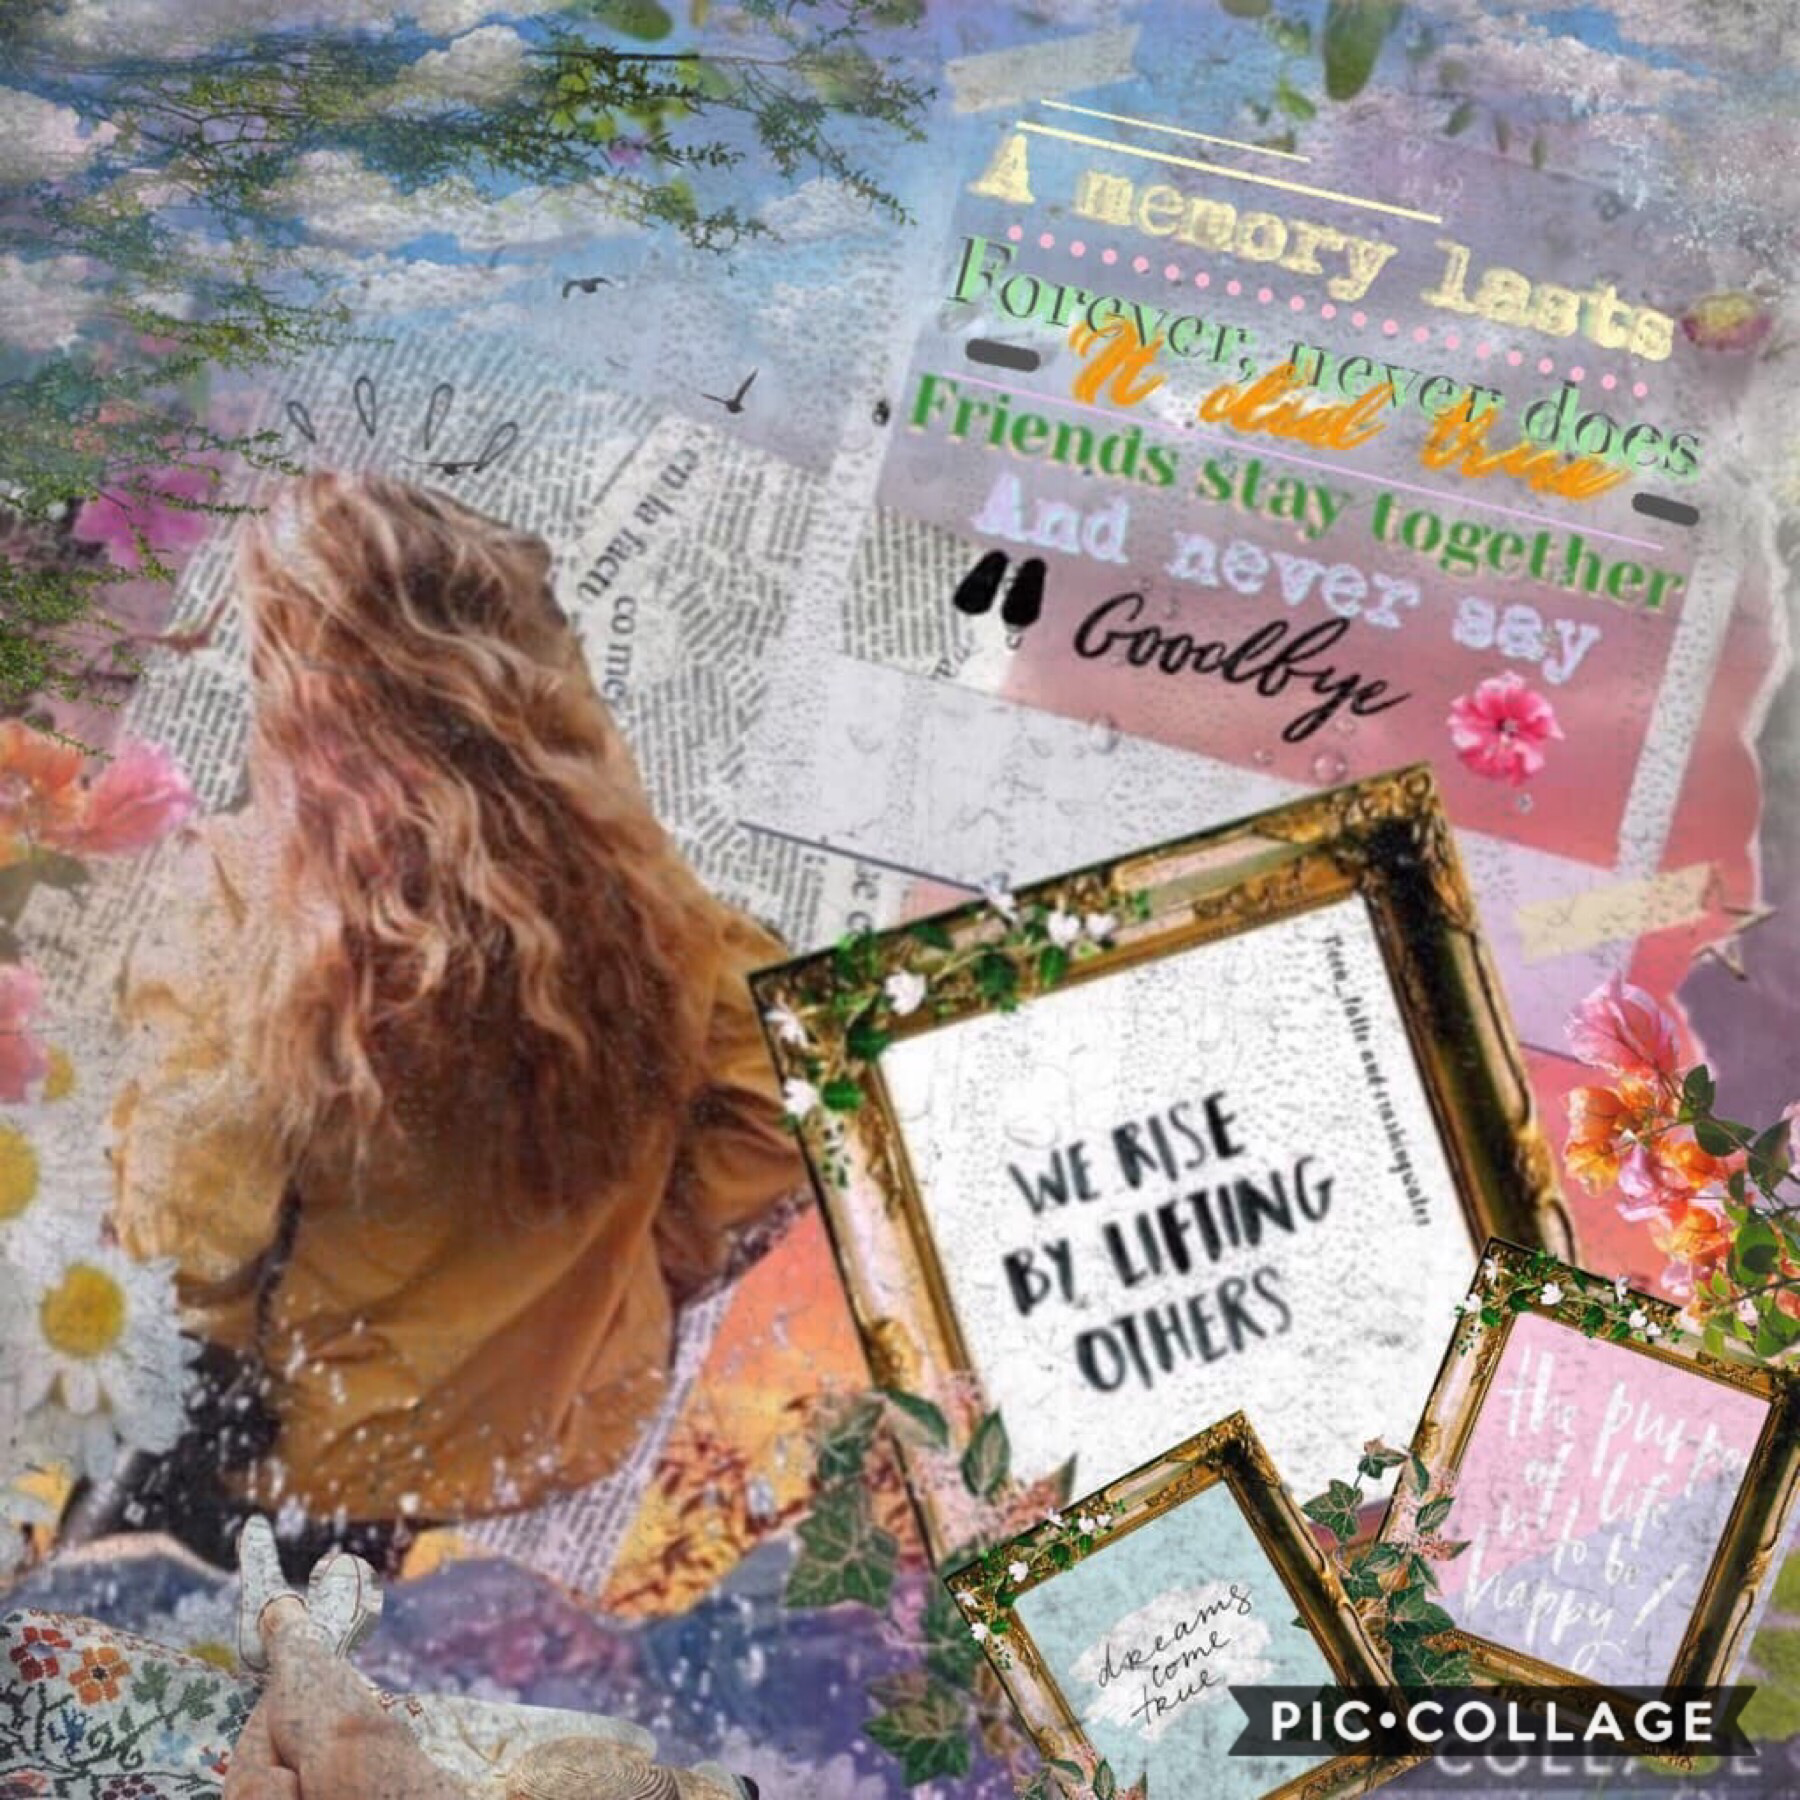 Collab with the amazing moon_latte😊💓she did the stunning quote and I did the background ✨I'm trying to work on maybe complicating my backgrounds a bit more as I feel they are a bit simple 😂Comment any tips below ❤️